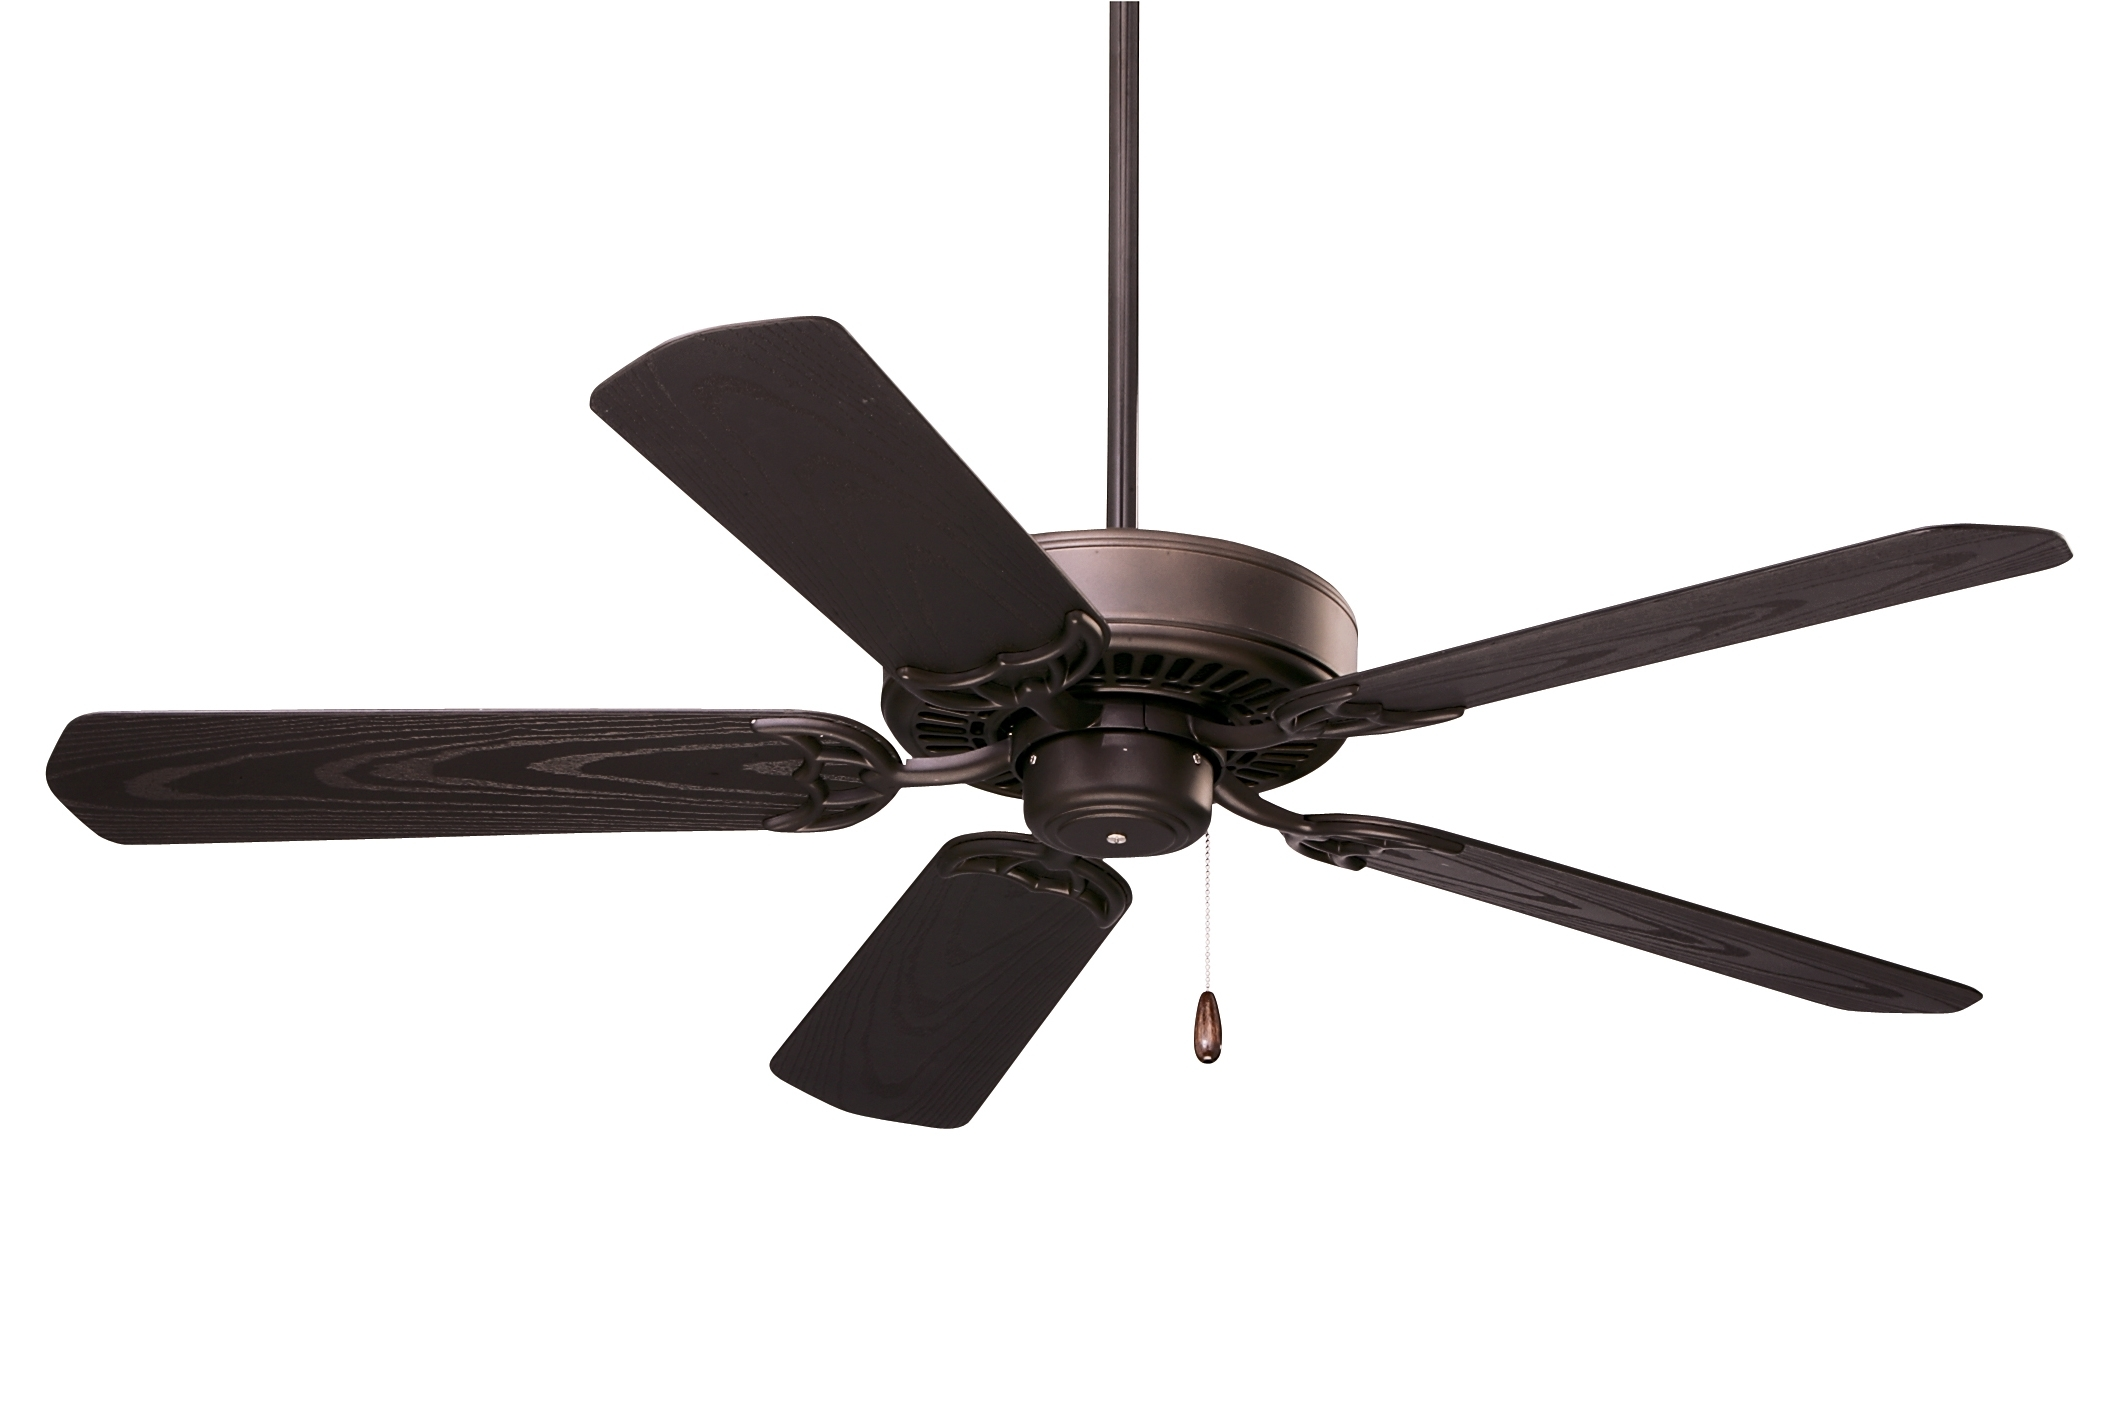 "Emerson Outdoor Ceiling Fans With Lights For Most Current Emerson Ceiling Fans Indoor/outdoor 52"" Summer Night : Lighting Etc (View 5 of 20)"